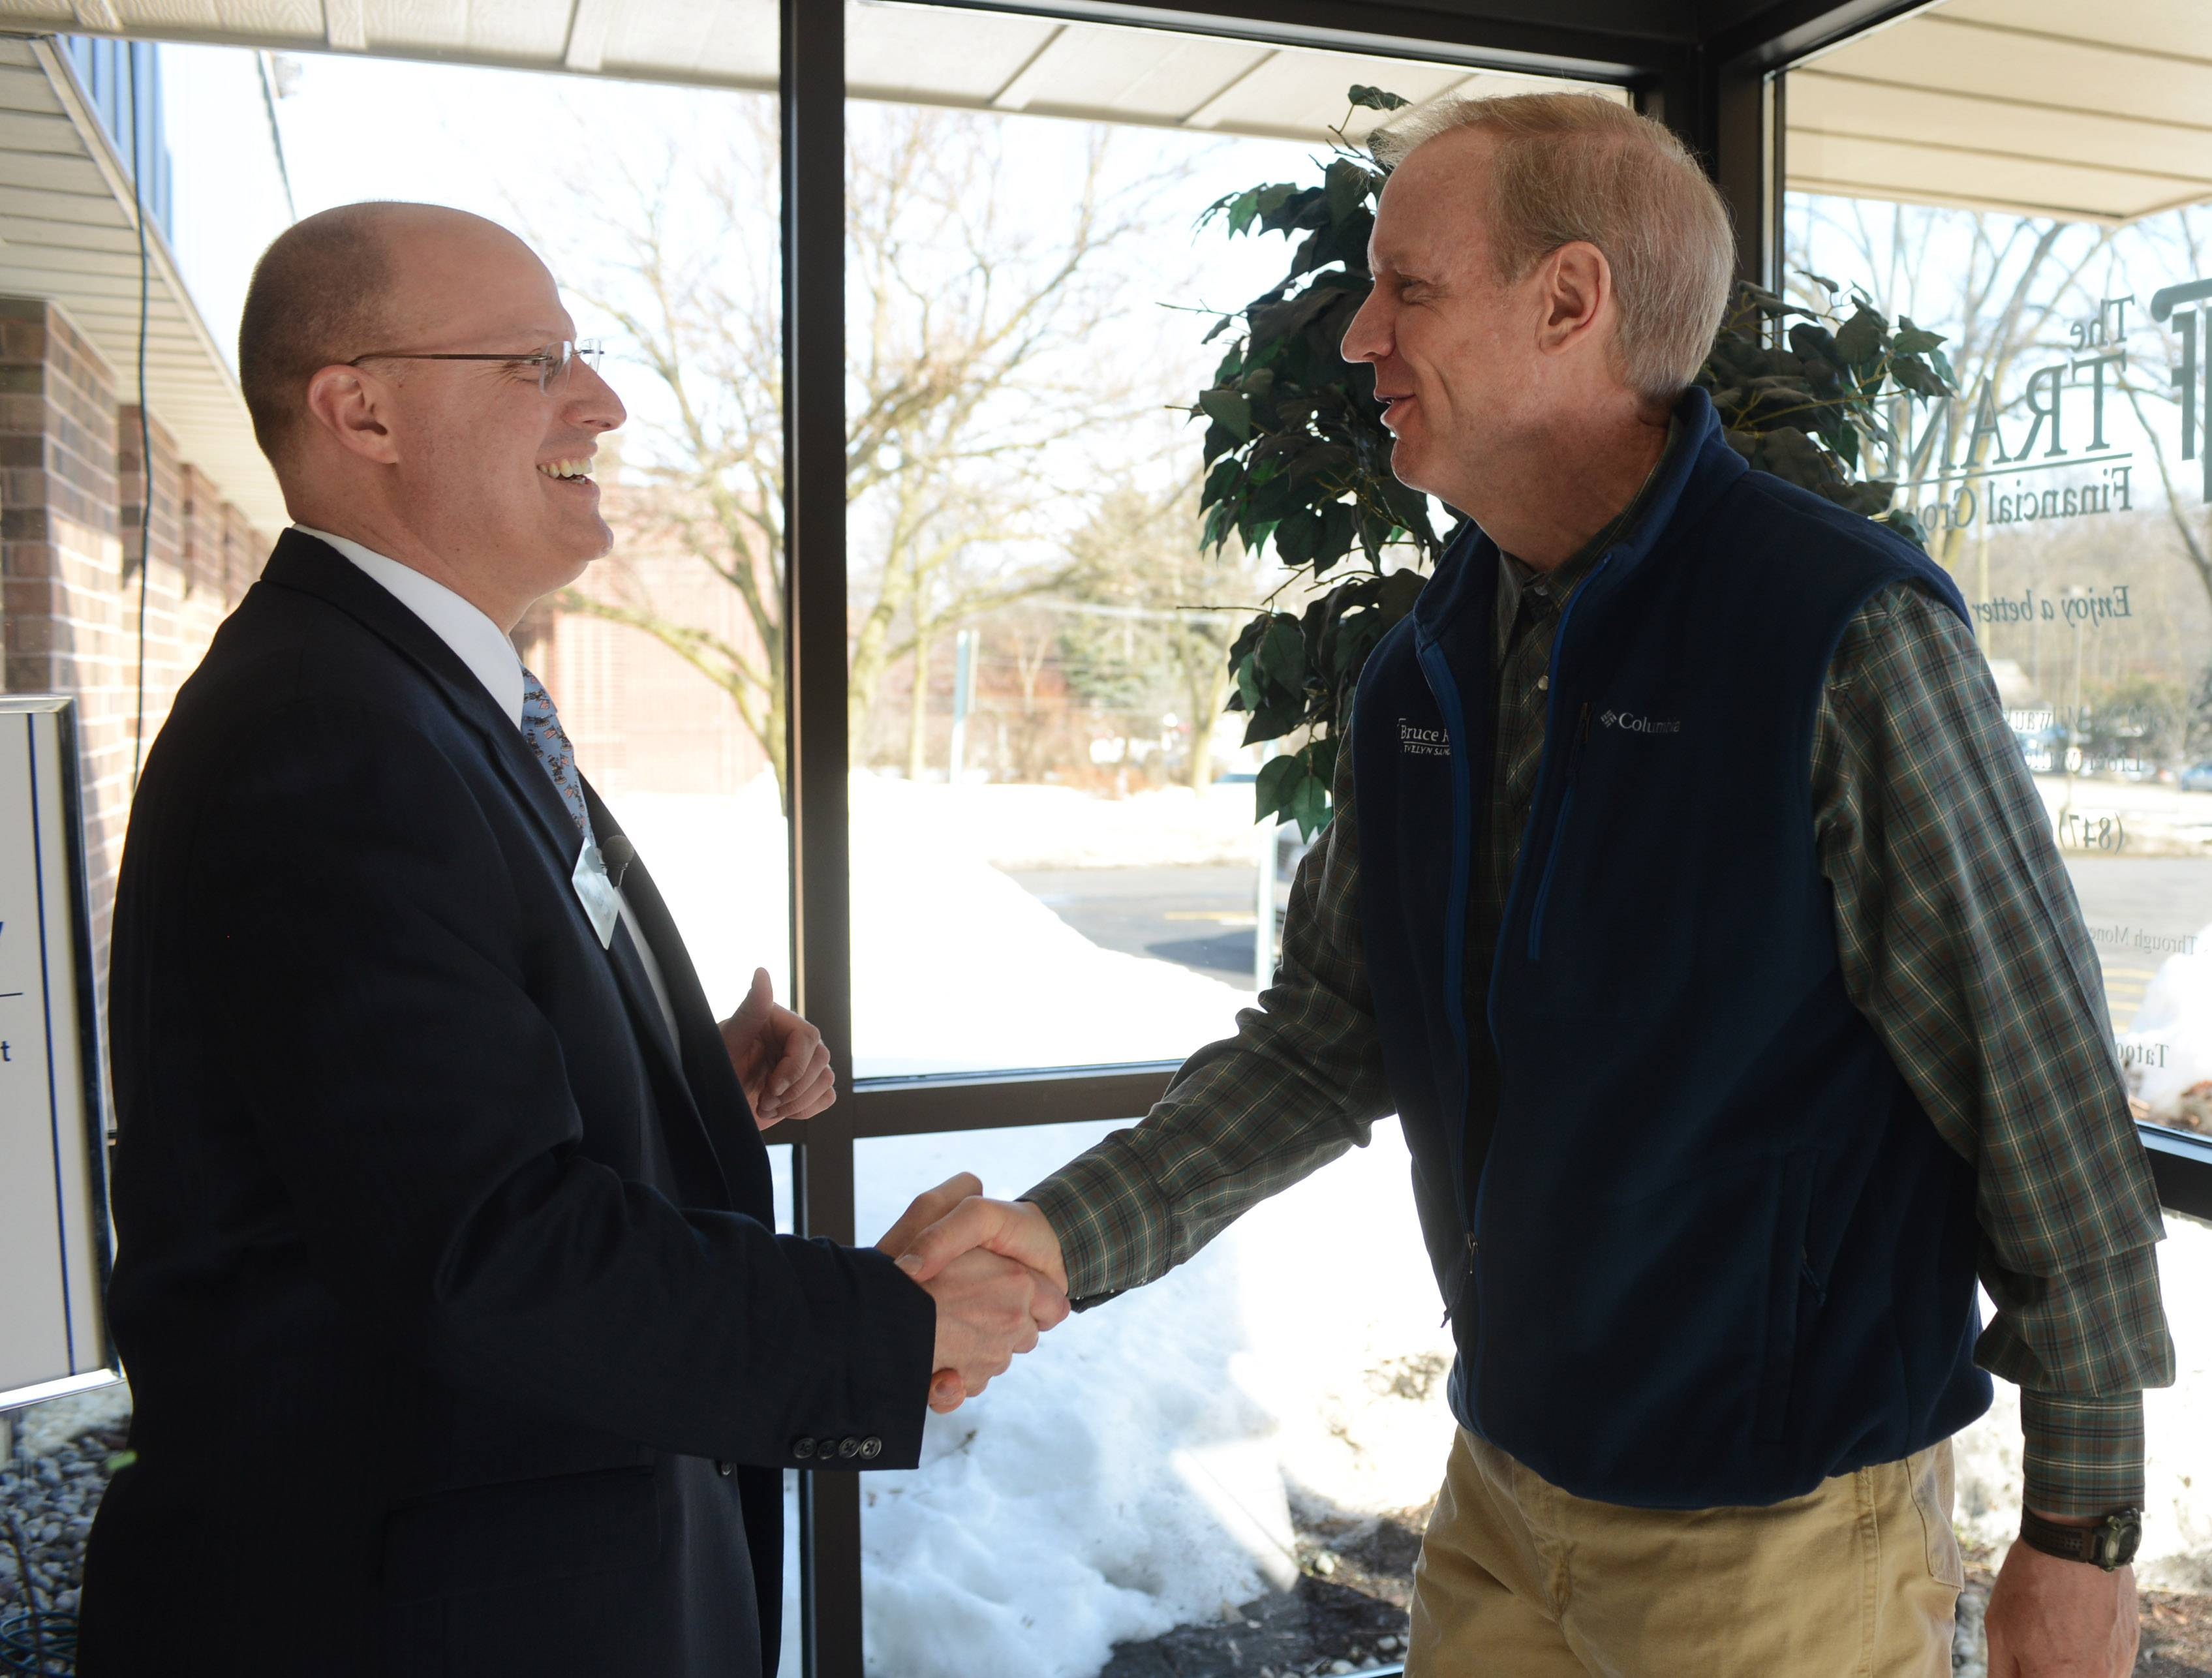 Republican gubernatorial candidate Bruce Rauner, right, meets Roch Tranel of Tranel Financial Group during a bus campaign stop in Libertyville Monday morning.